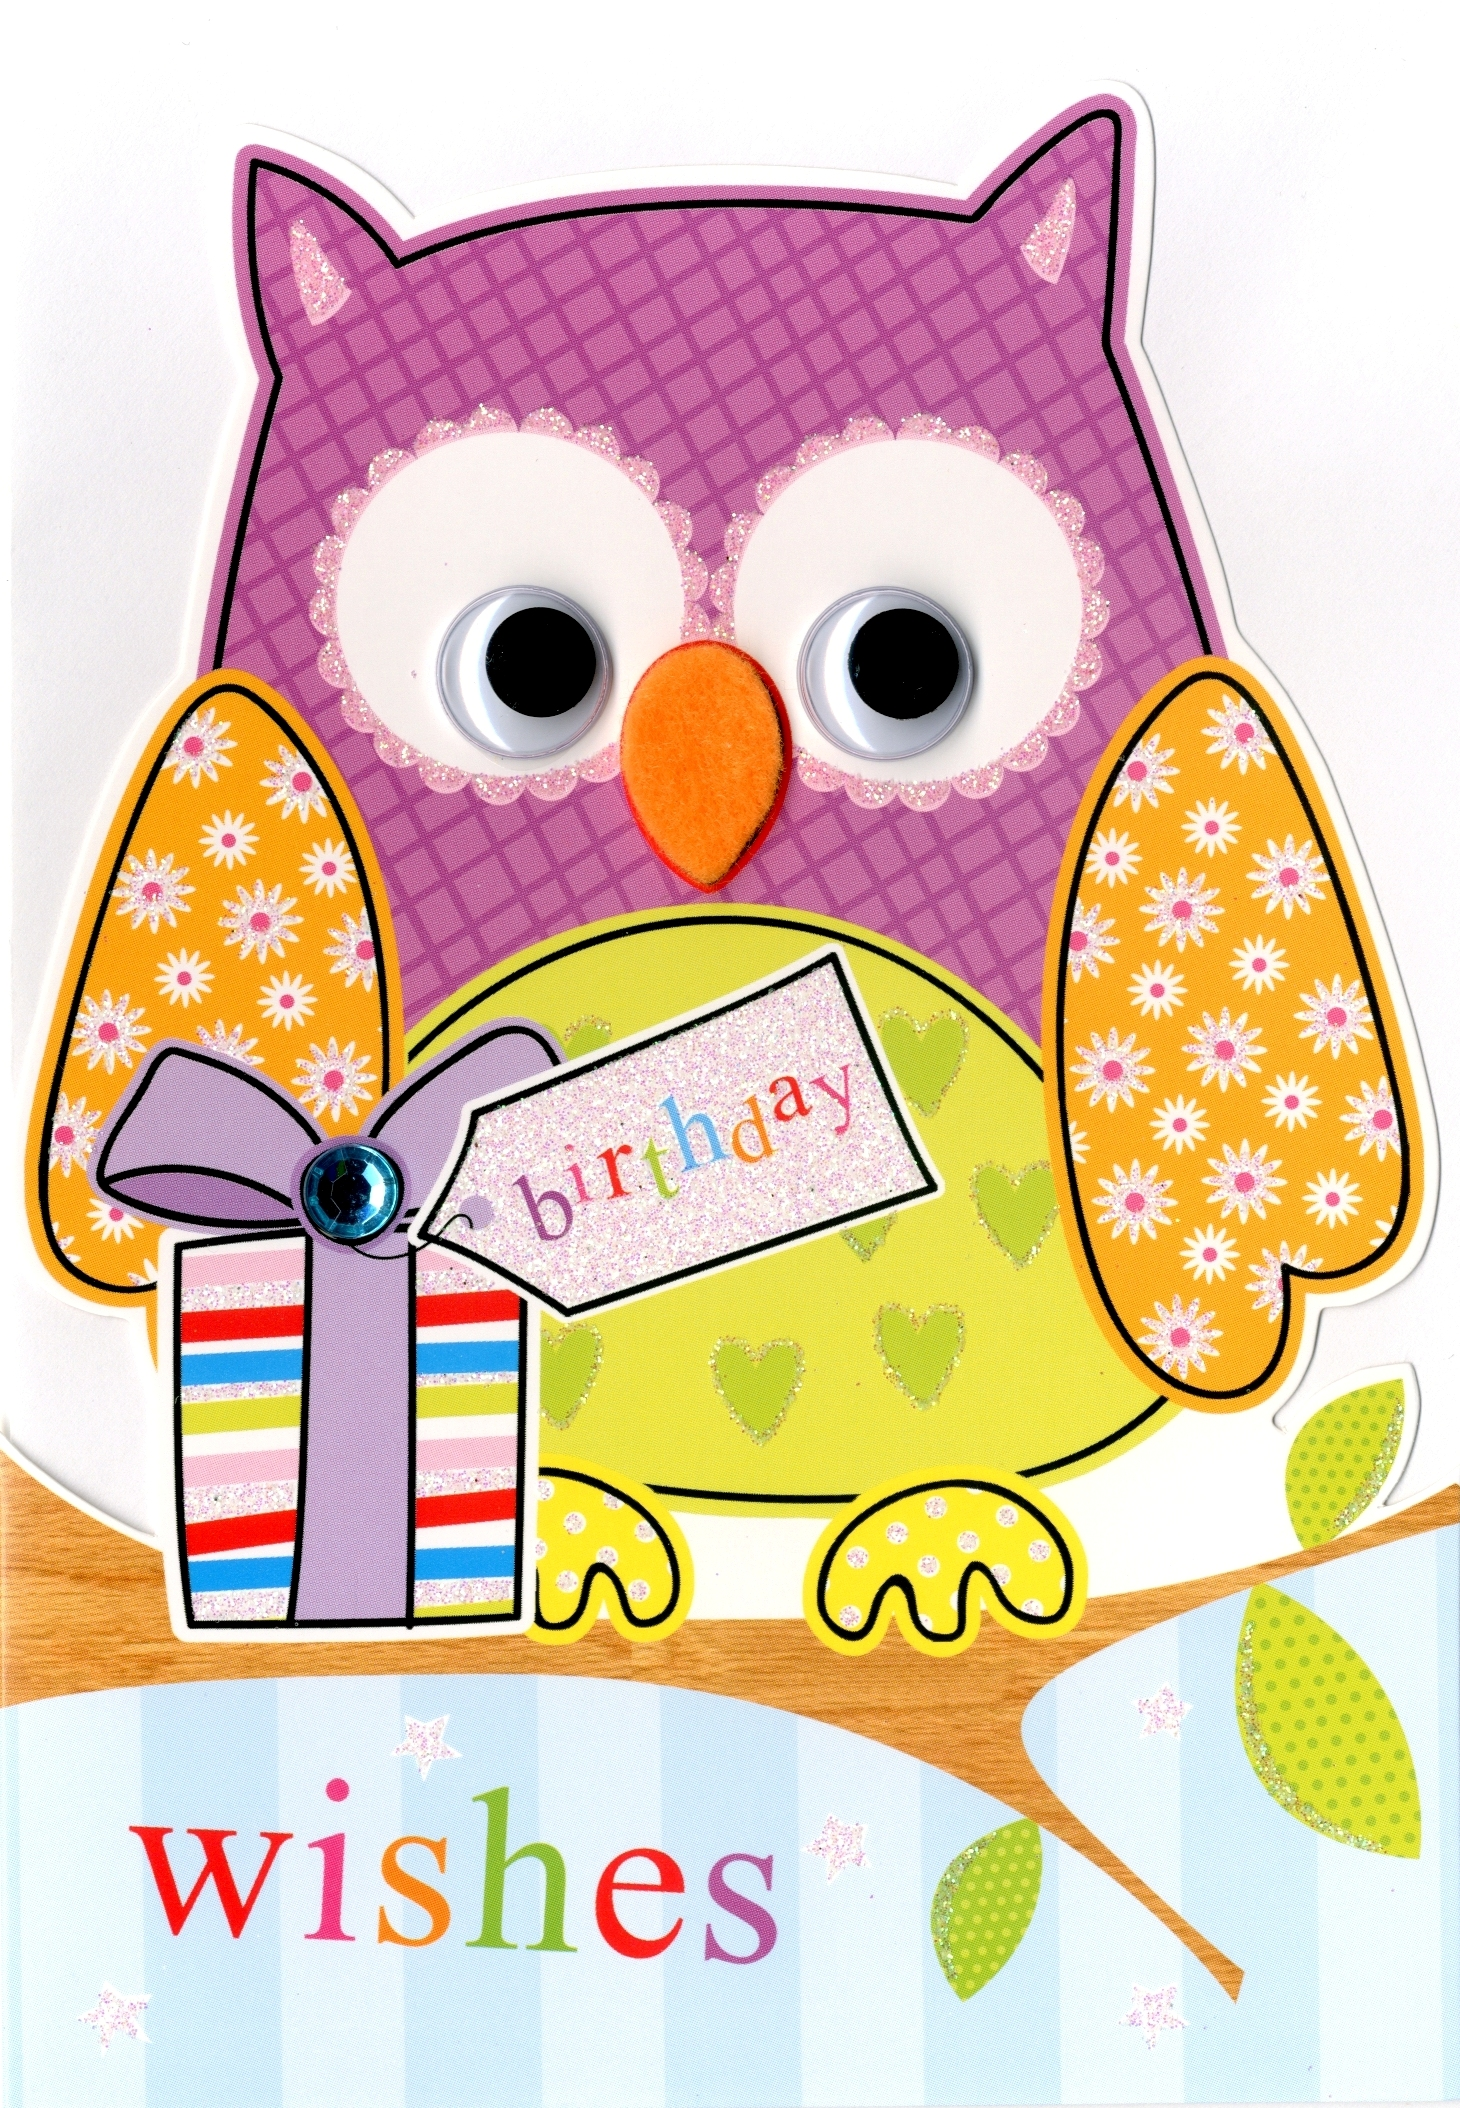 Owl birthday wishes greeting card cards love kates owl birthday wishes greeting card m4hsunfo